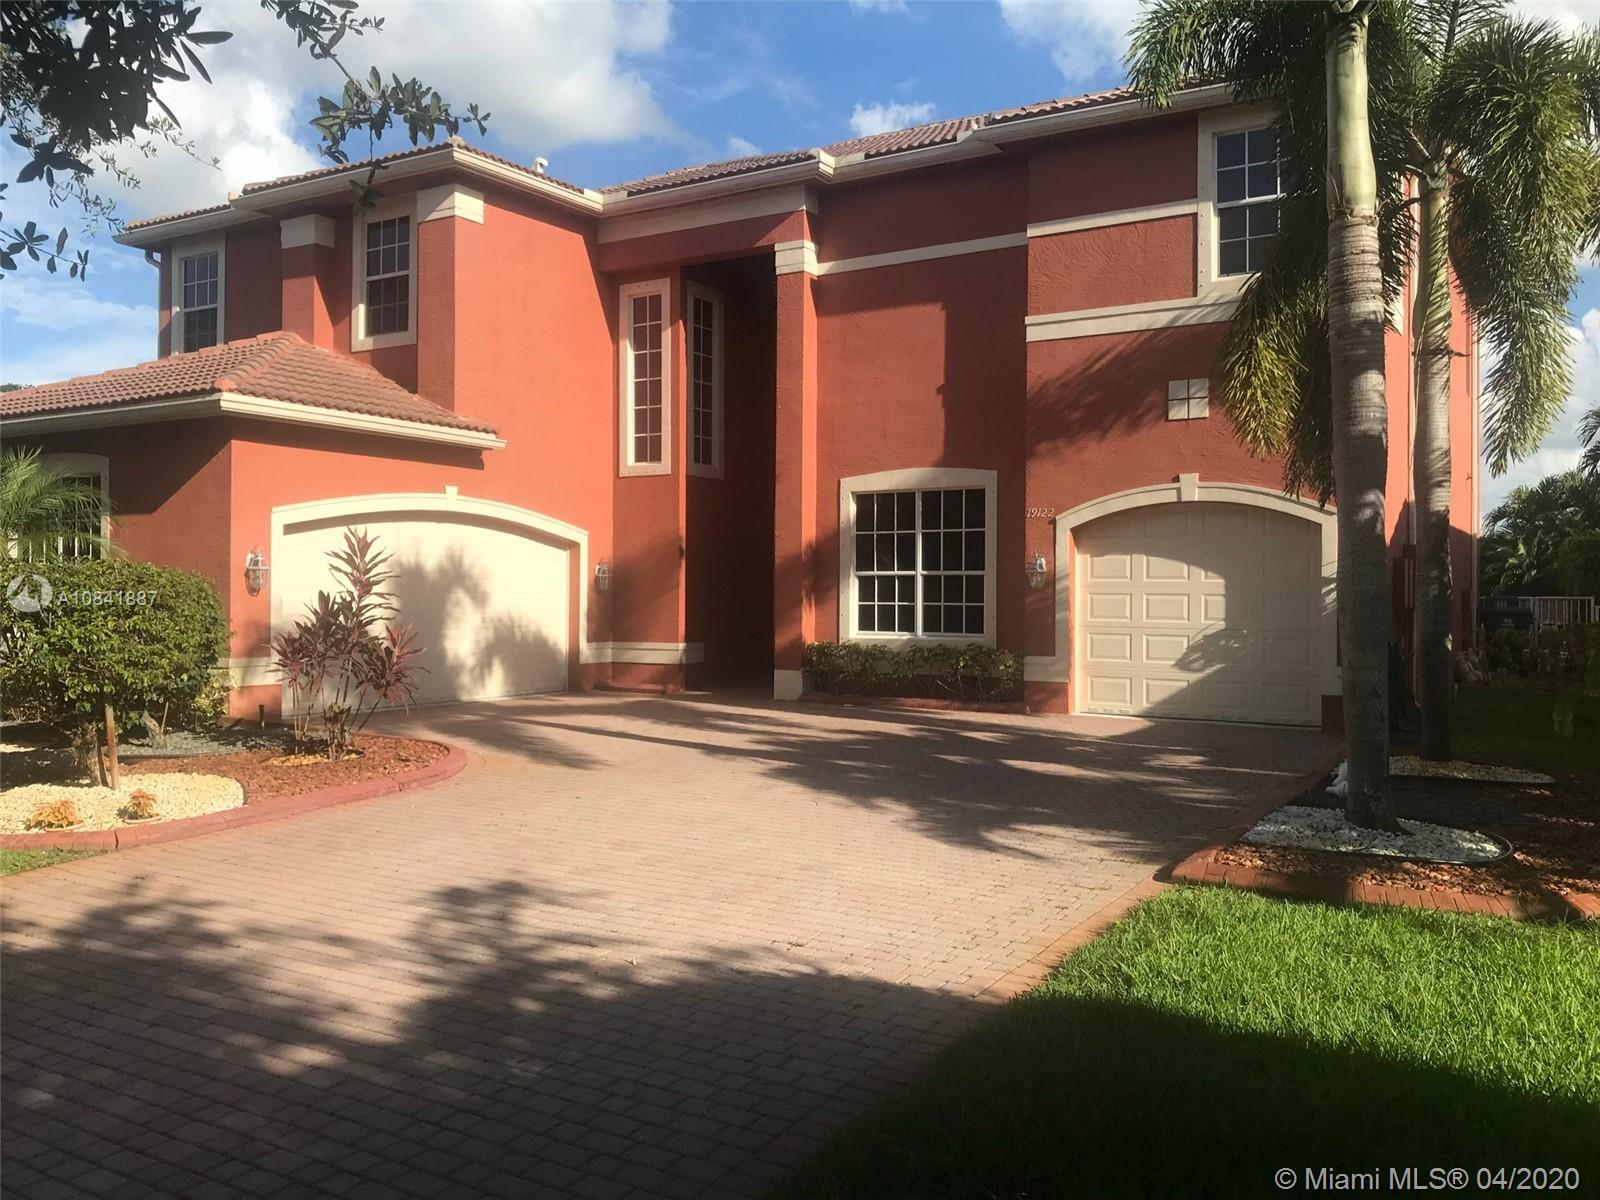 19122 SW 55 St, Miramar, Florida 5 Bedroom as one of Homes & Land Real Estate